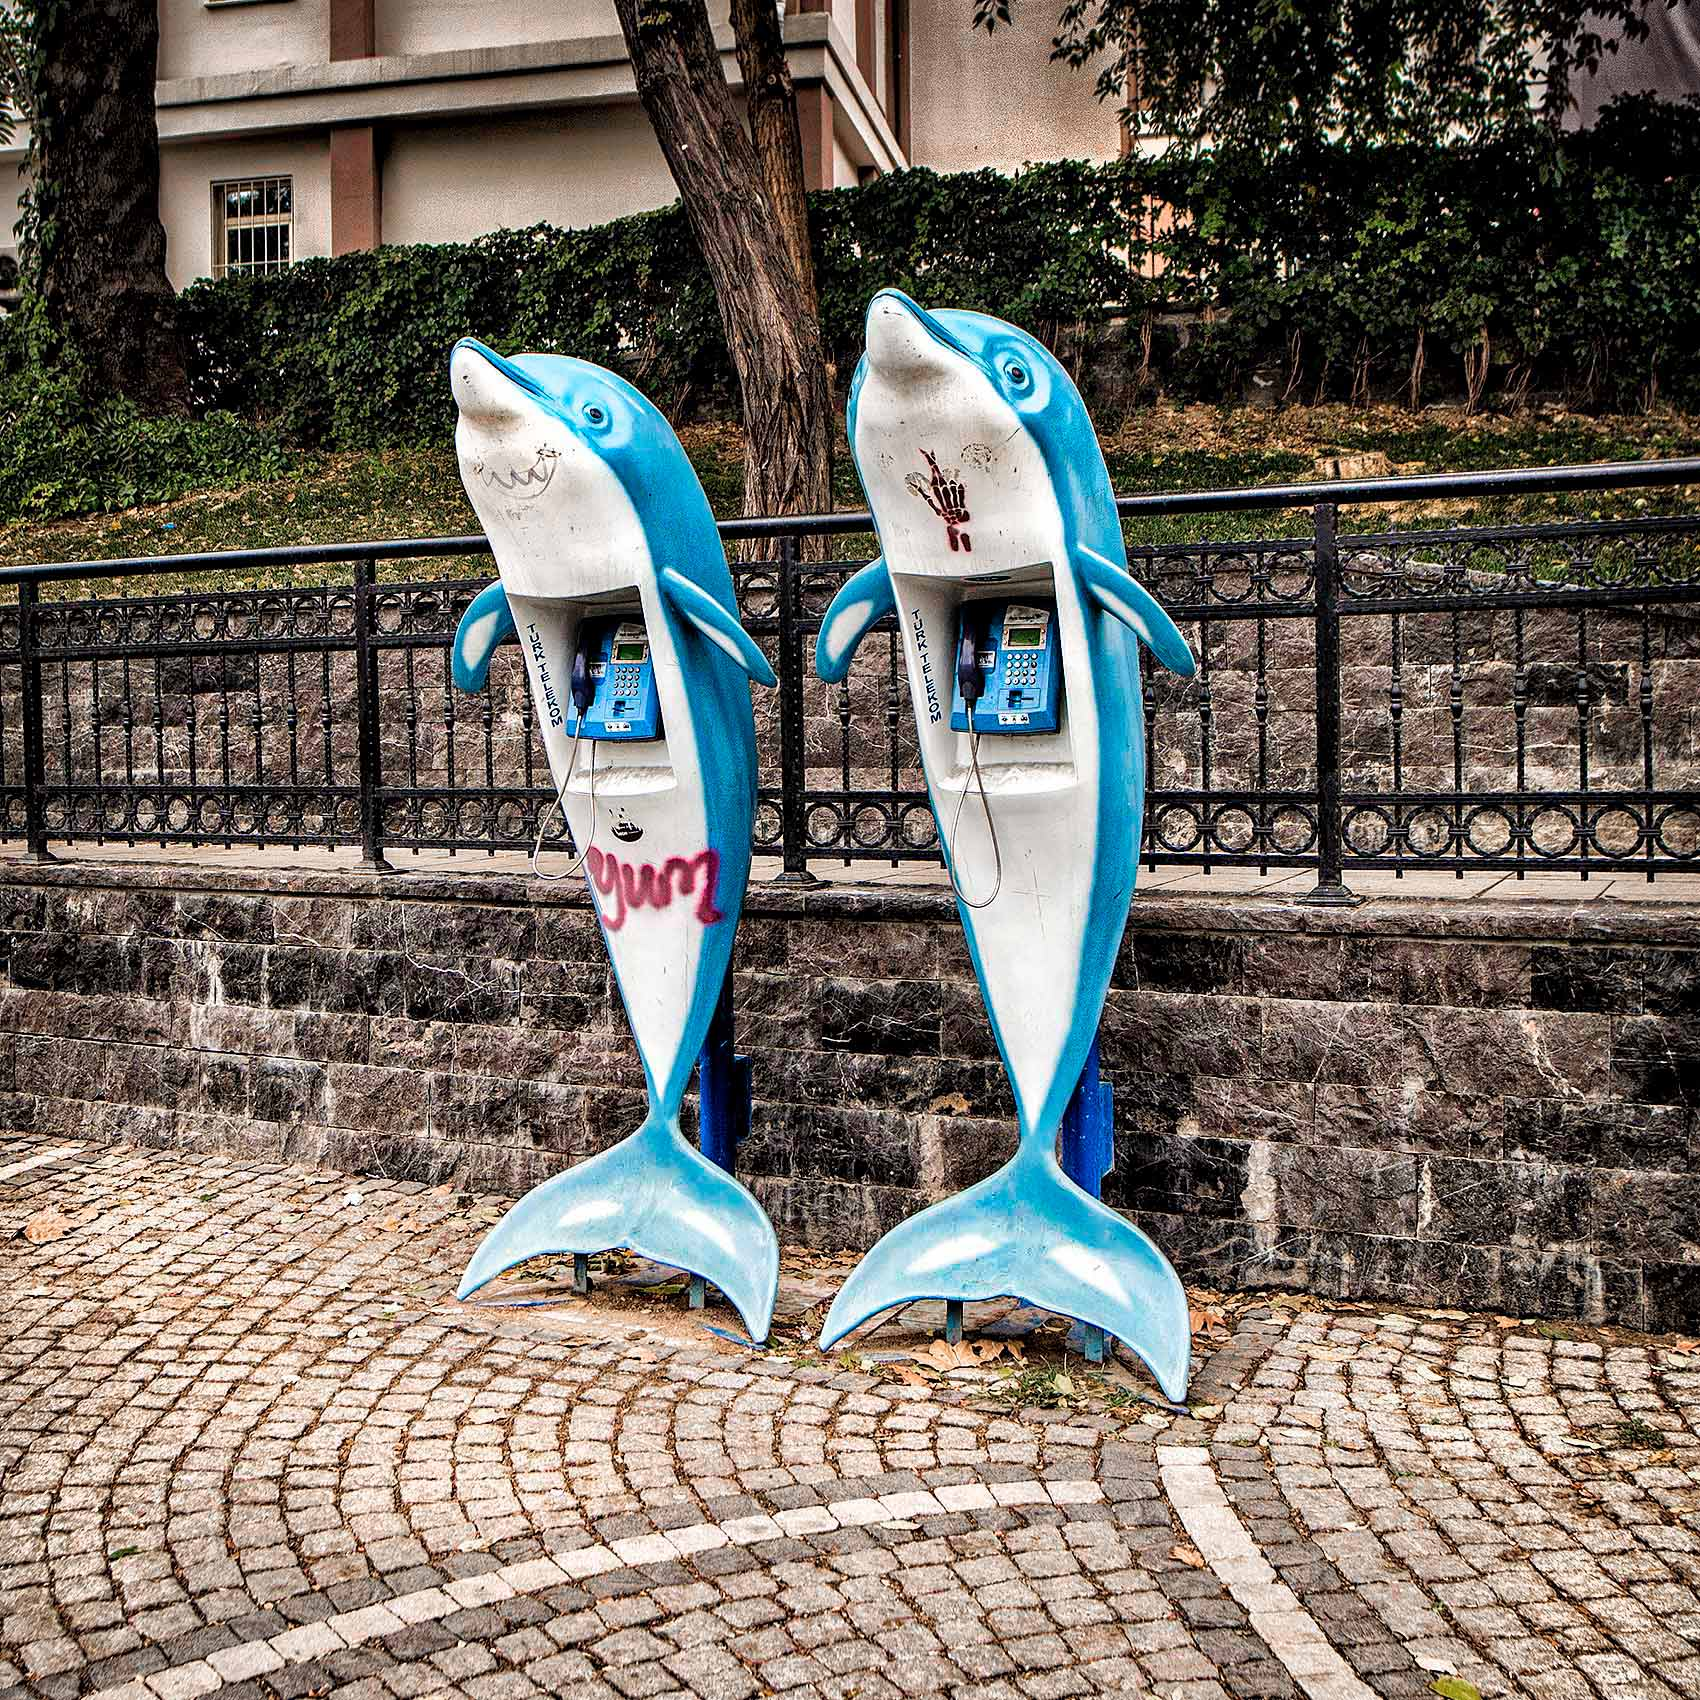 twin-telephone-booths-that-look-like-dolphins-in-the-karakoy-district-of-istanbul